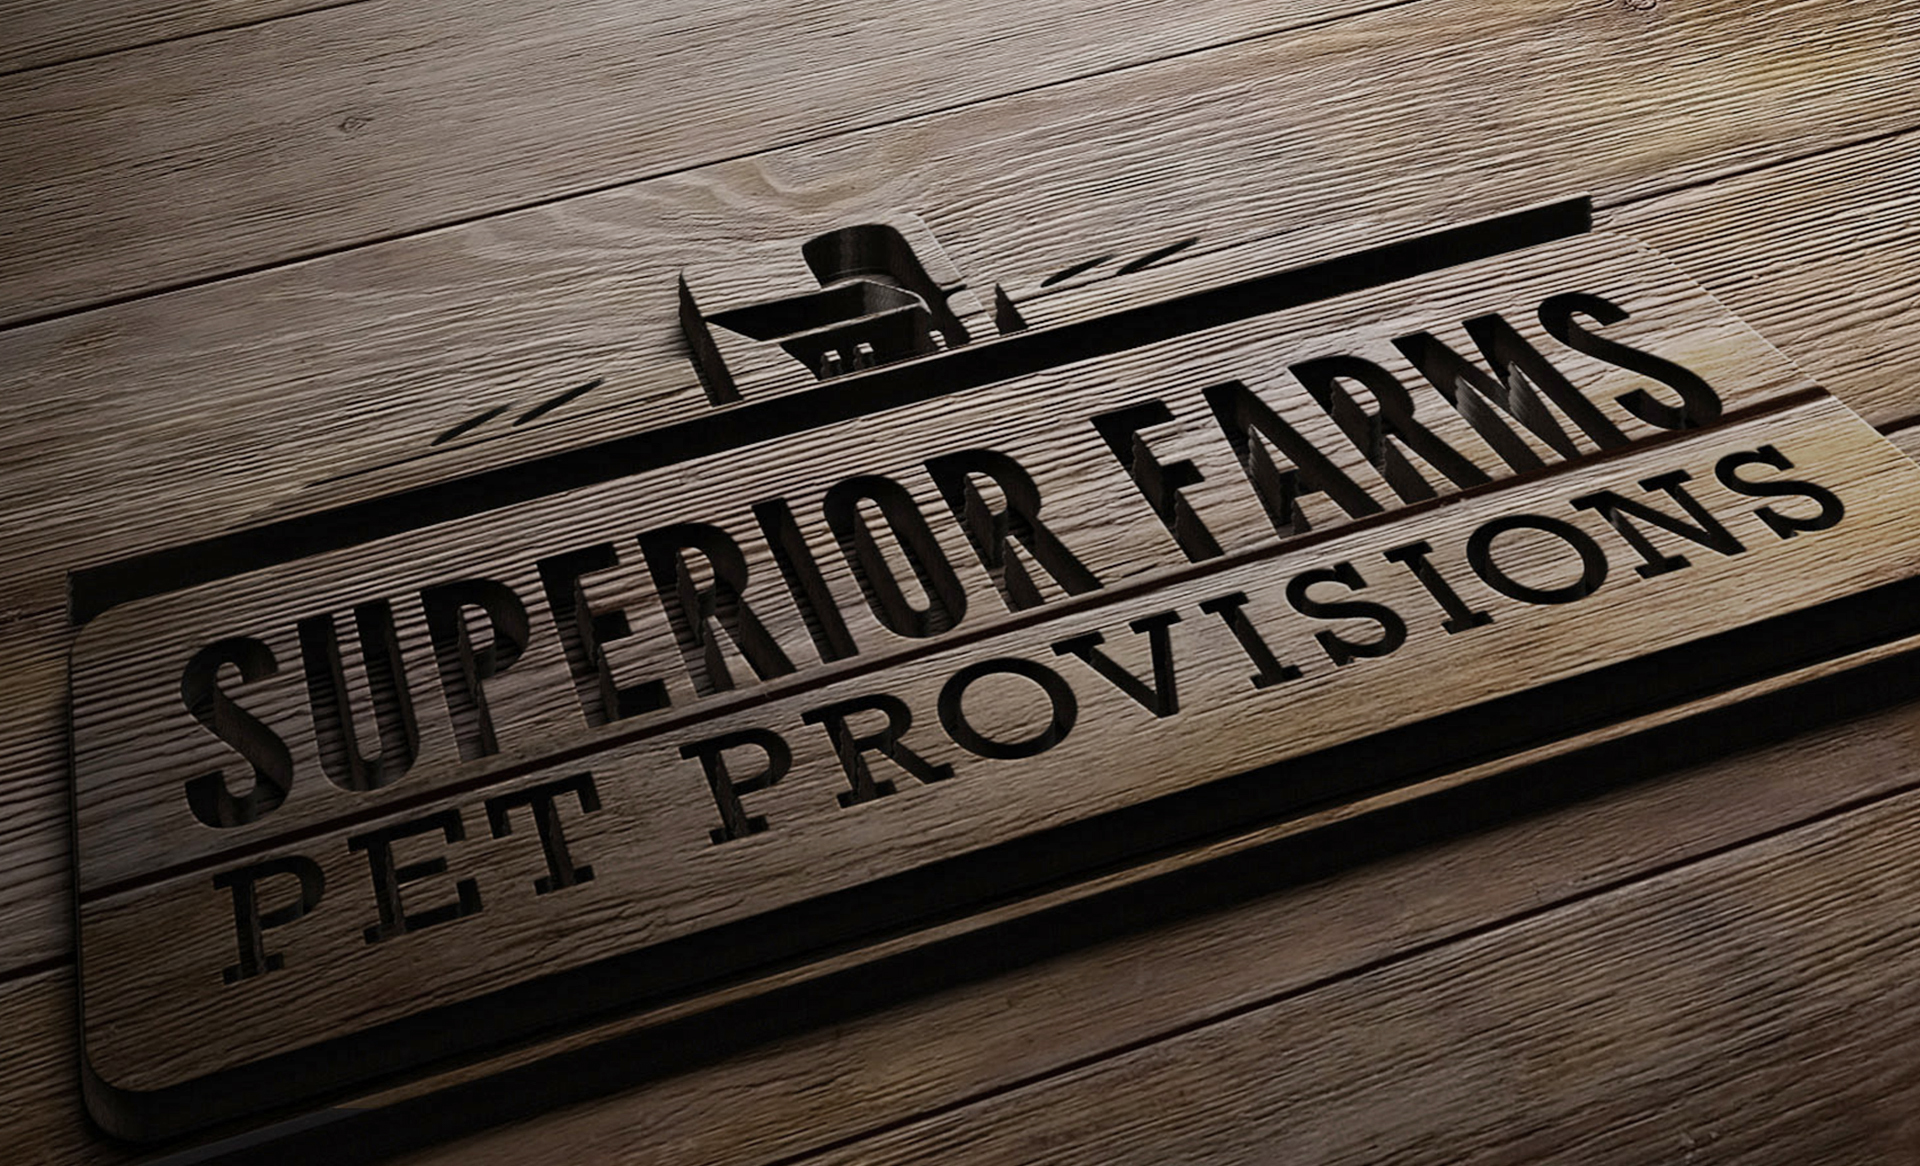 Superior Farms branding